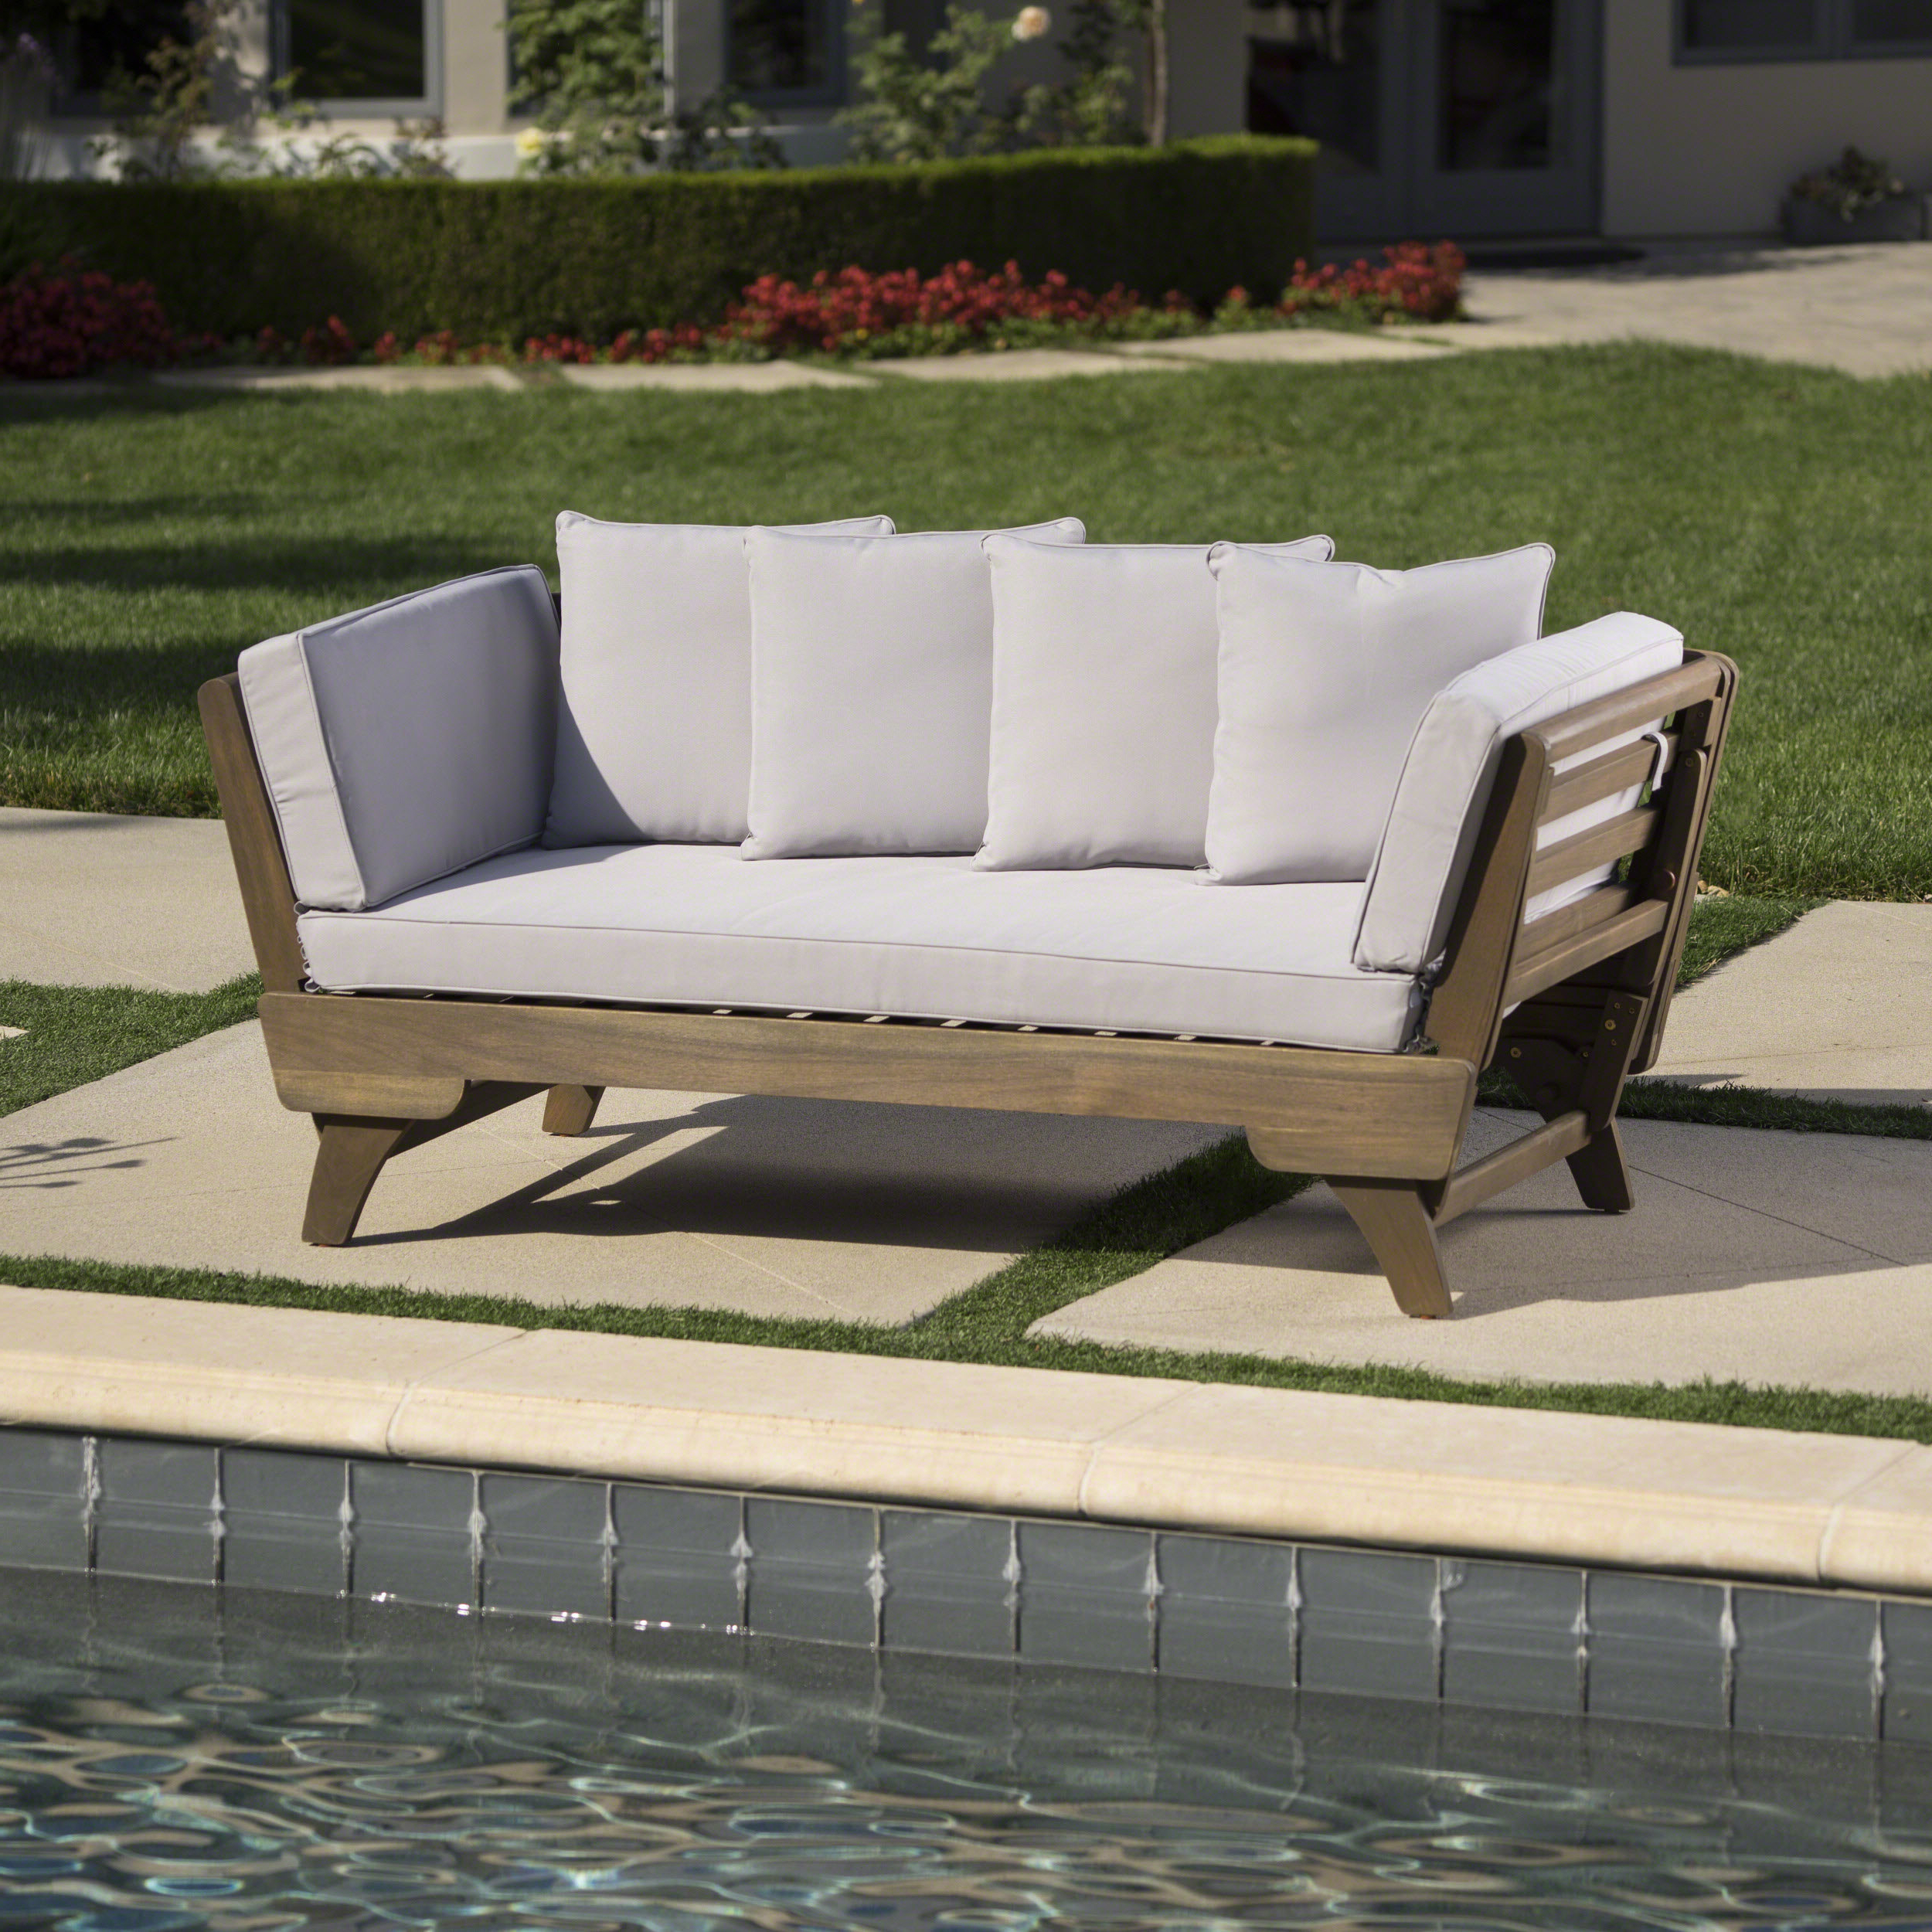 Farmhouse & Rustic Outdoor Sofas (View 5 of 20)